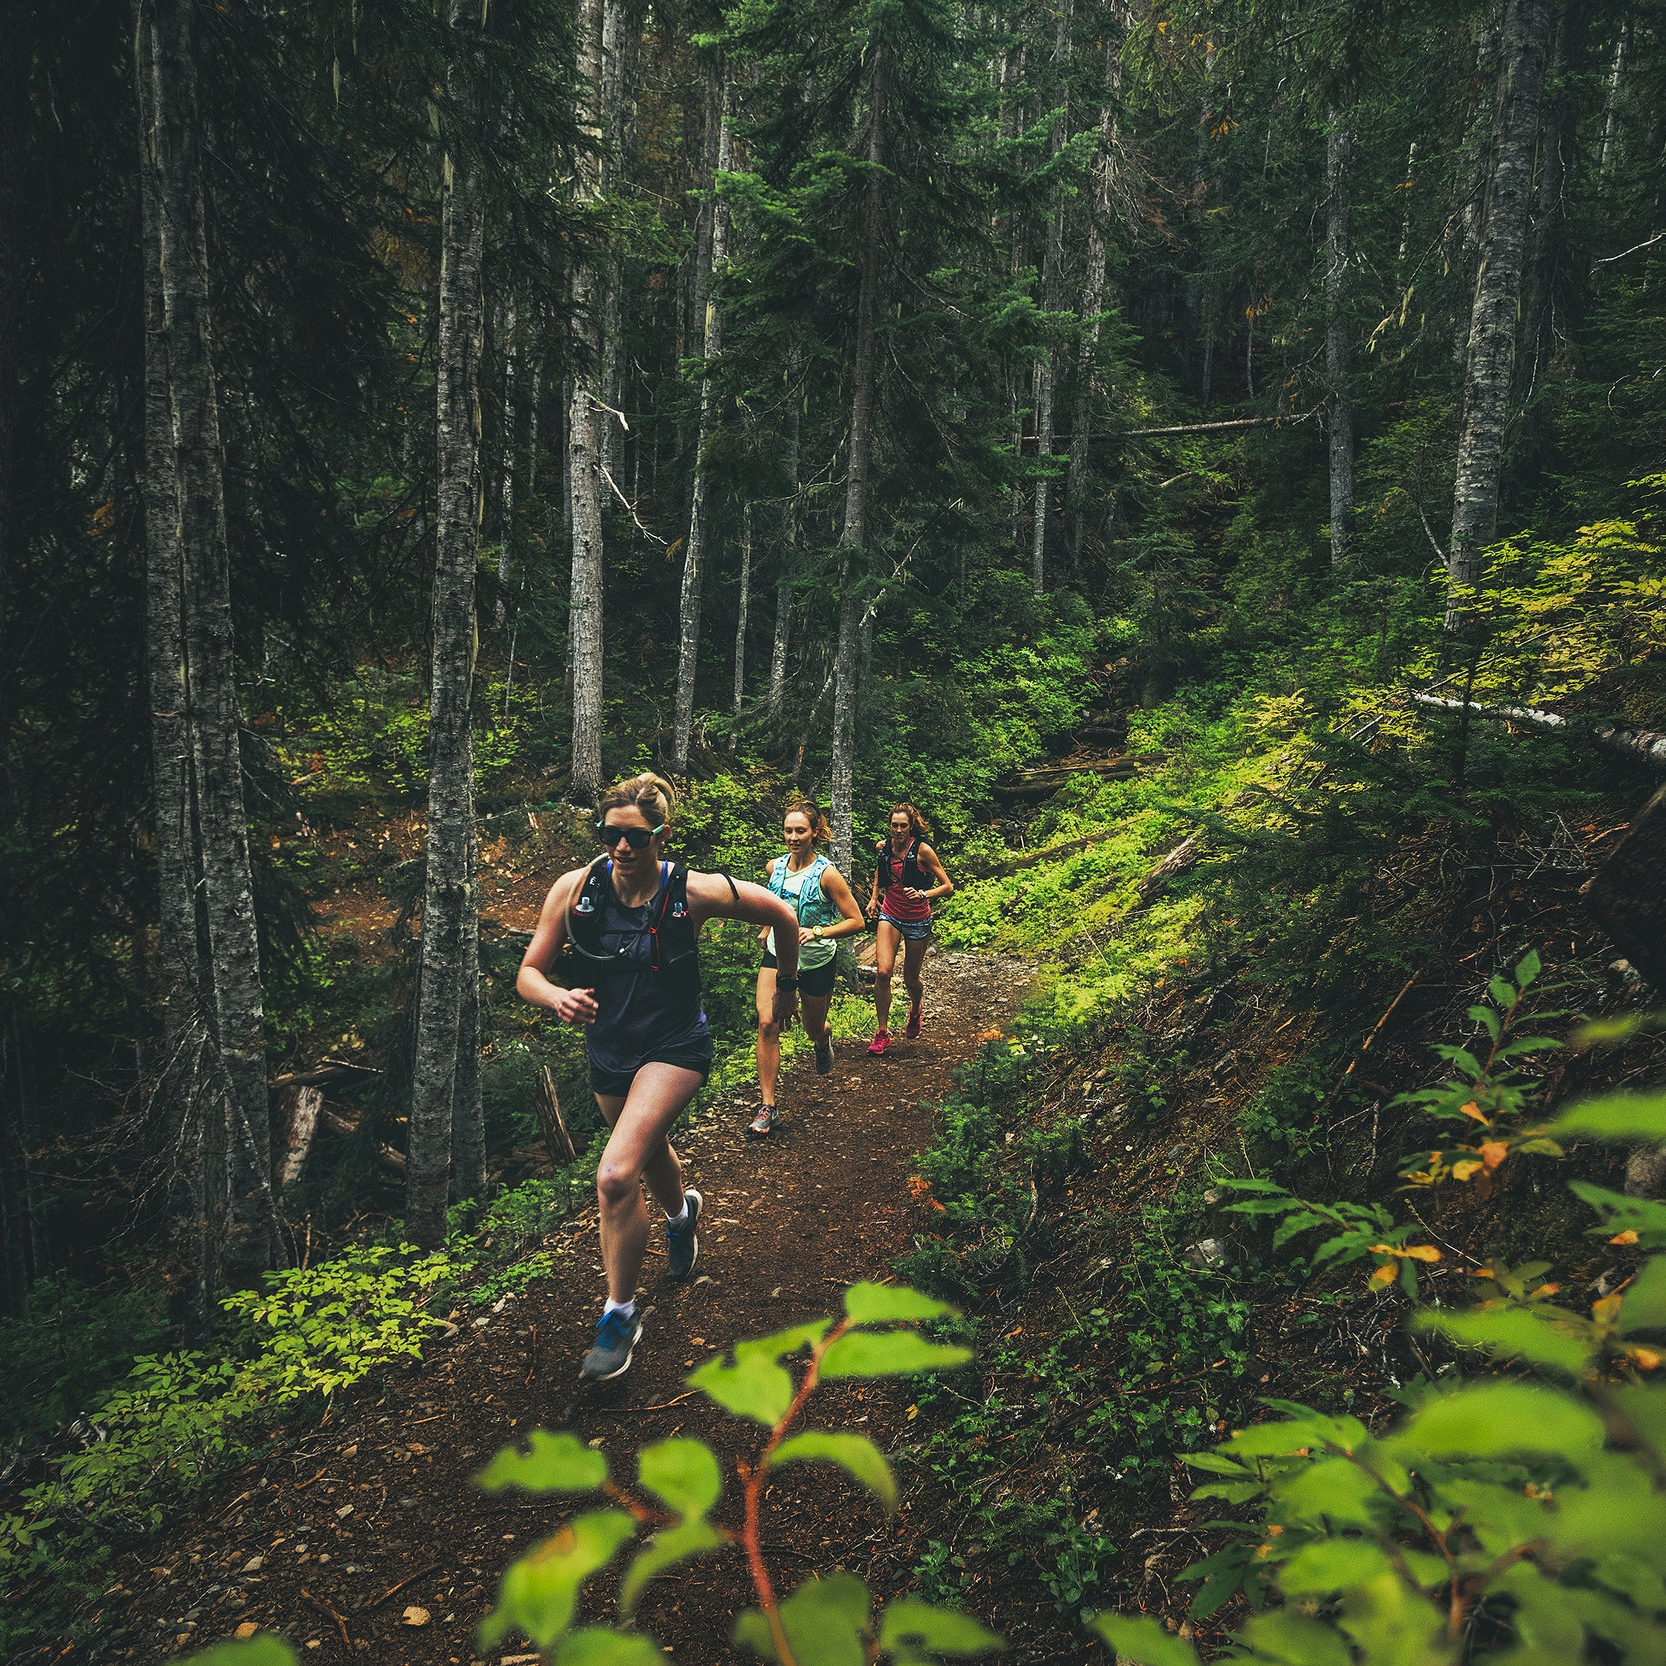 Fraser Valley Trail Race - IMG_6256 by Brice Ferre Studio - Vancouver Portrait Adventure and Athlete Photographer.jpg